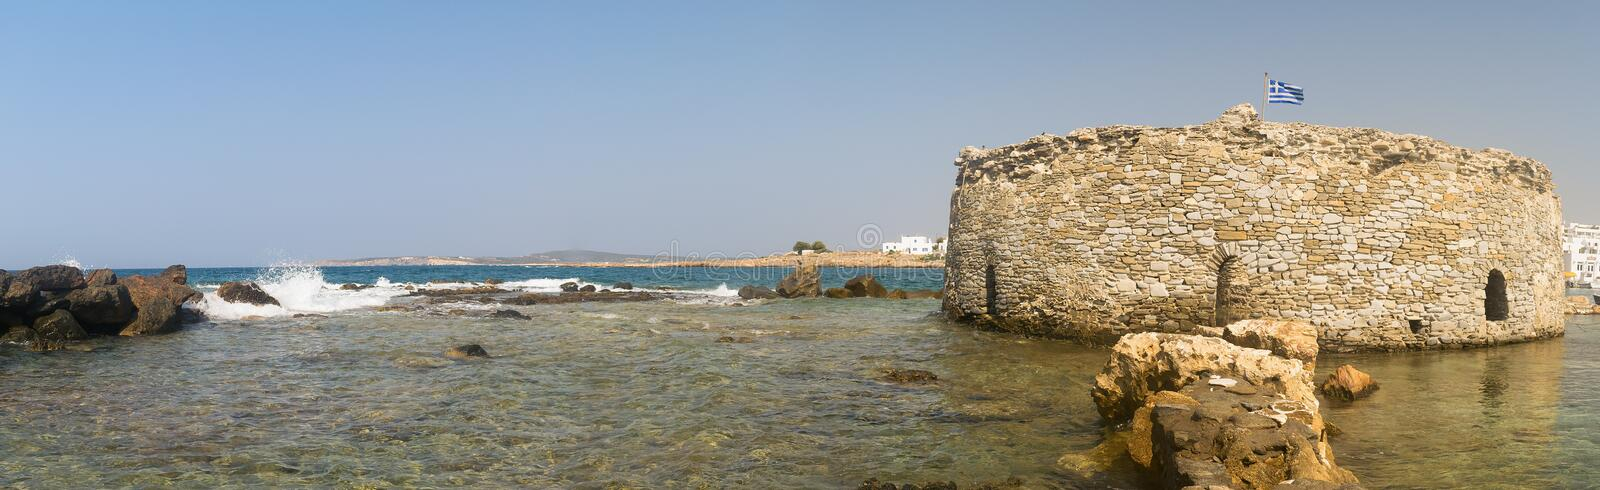 Kastelli castle of Paros island in Greece. An old Venetian fortress at Naoussa village. Panoramic view. royalty free stock photo